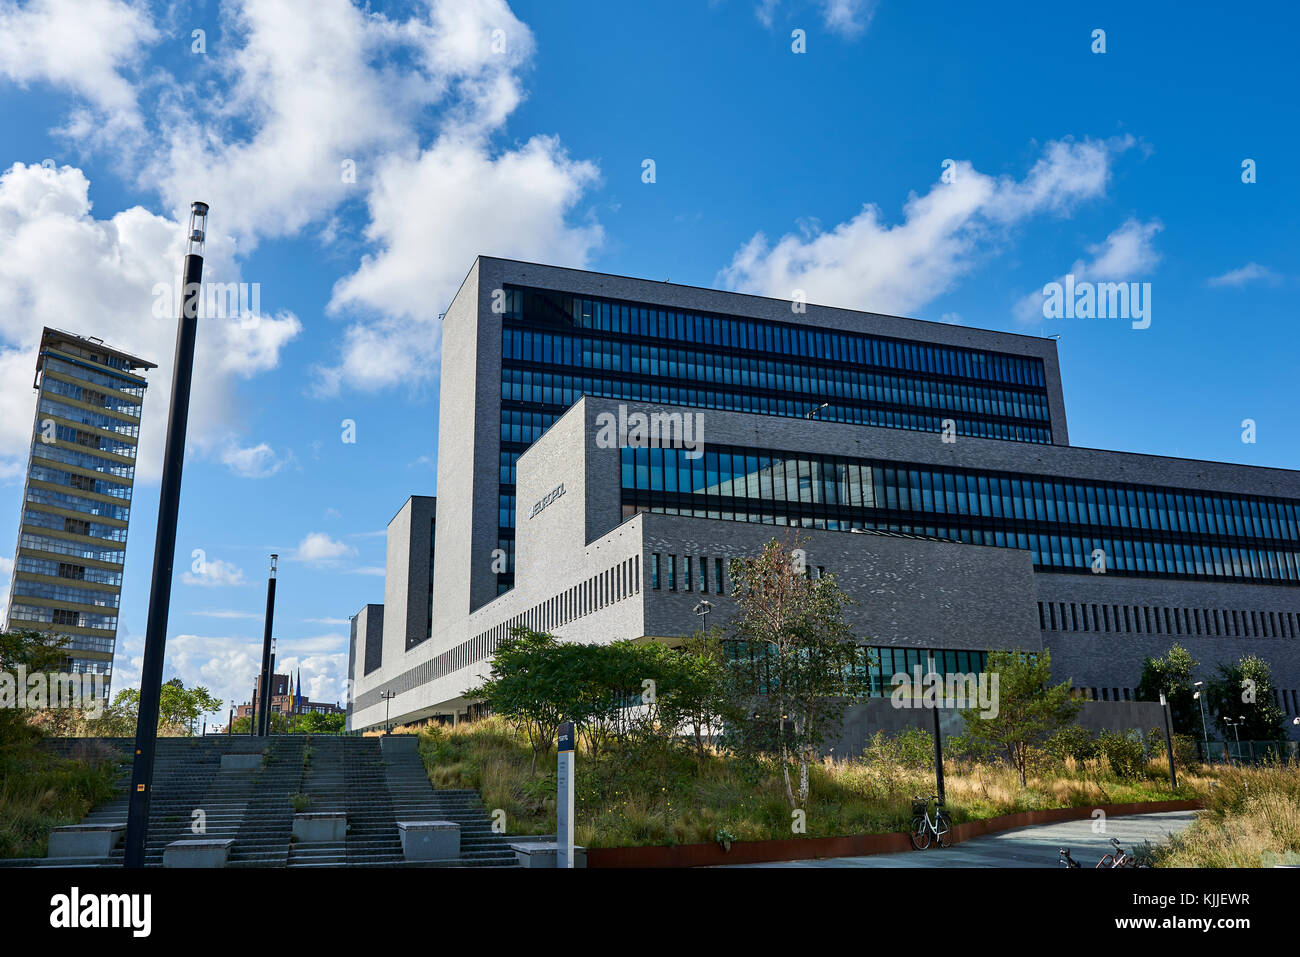 The office of Europol in The Hague, Netherlands. The law enforcement agency of the European Union - Stock Image